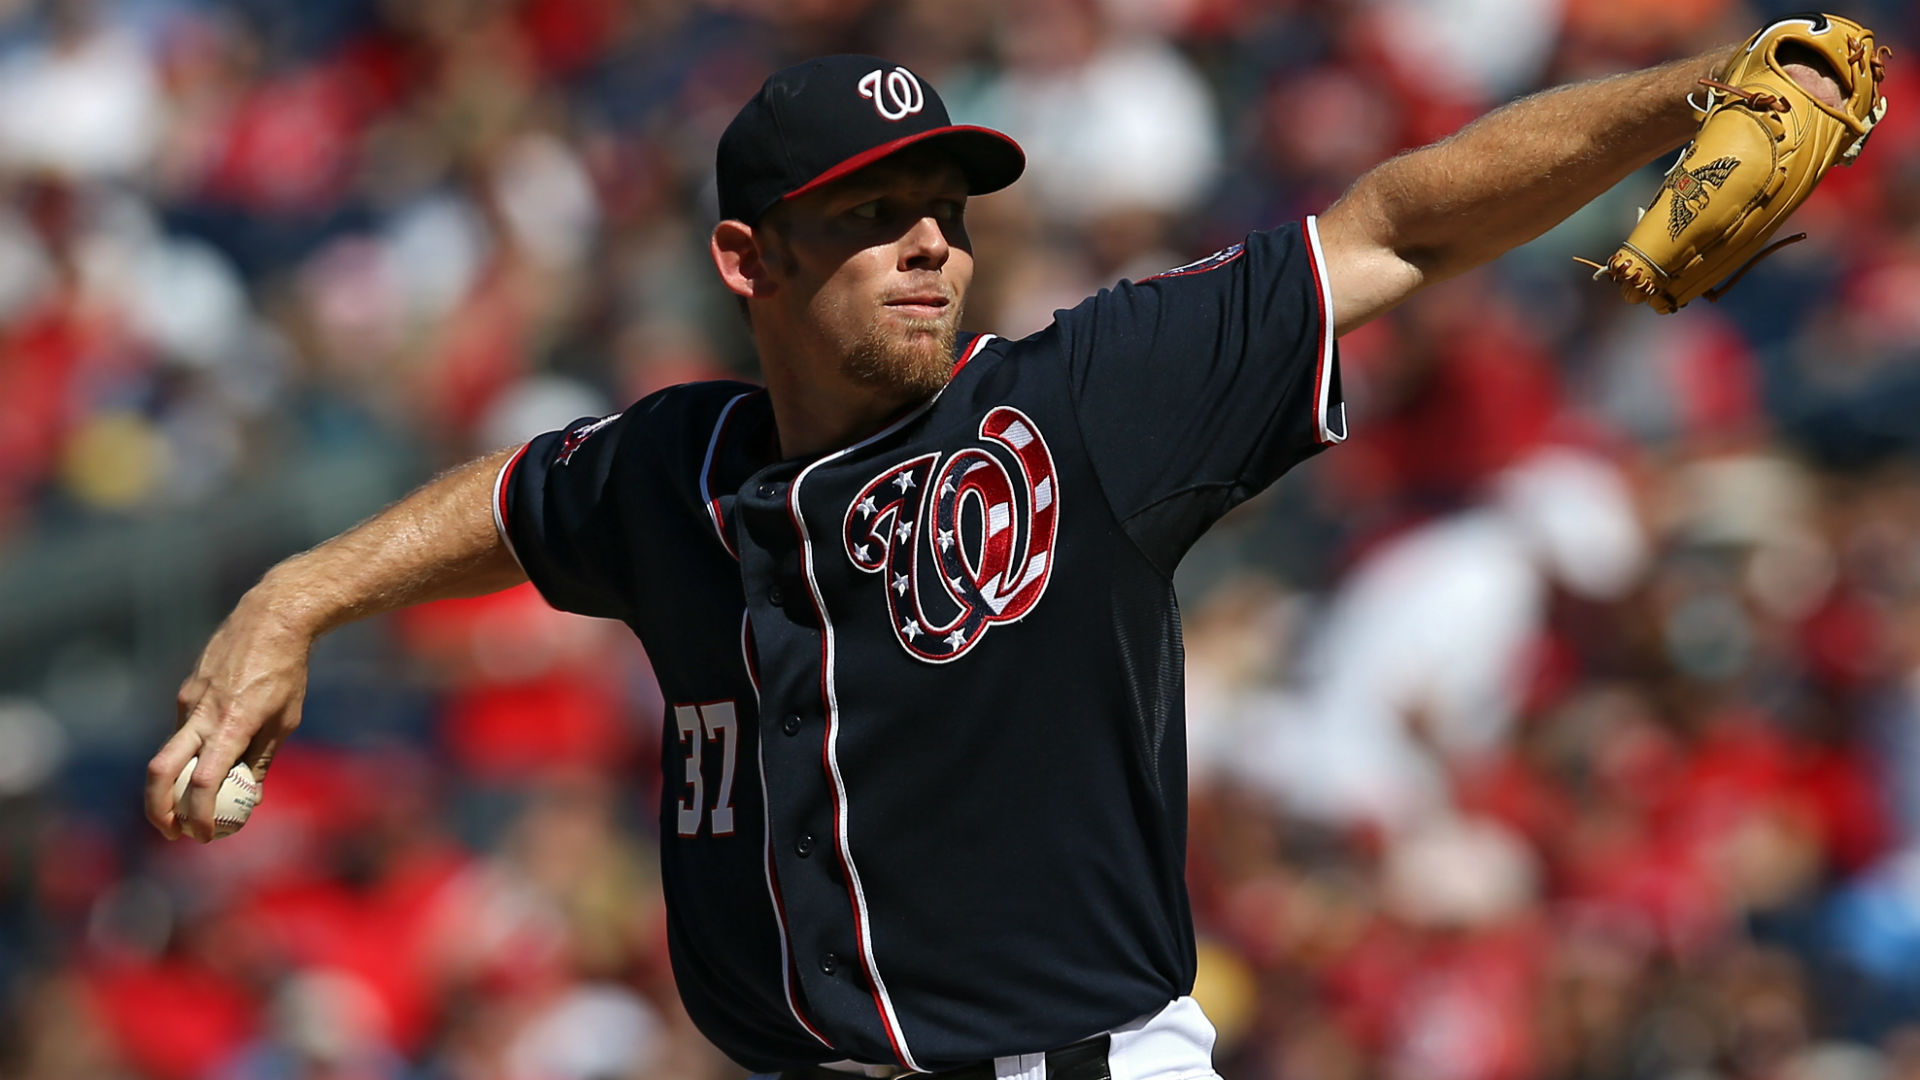 Daily Fantasy MLB Lineup: SP rankings, bullpen notes for Saturday